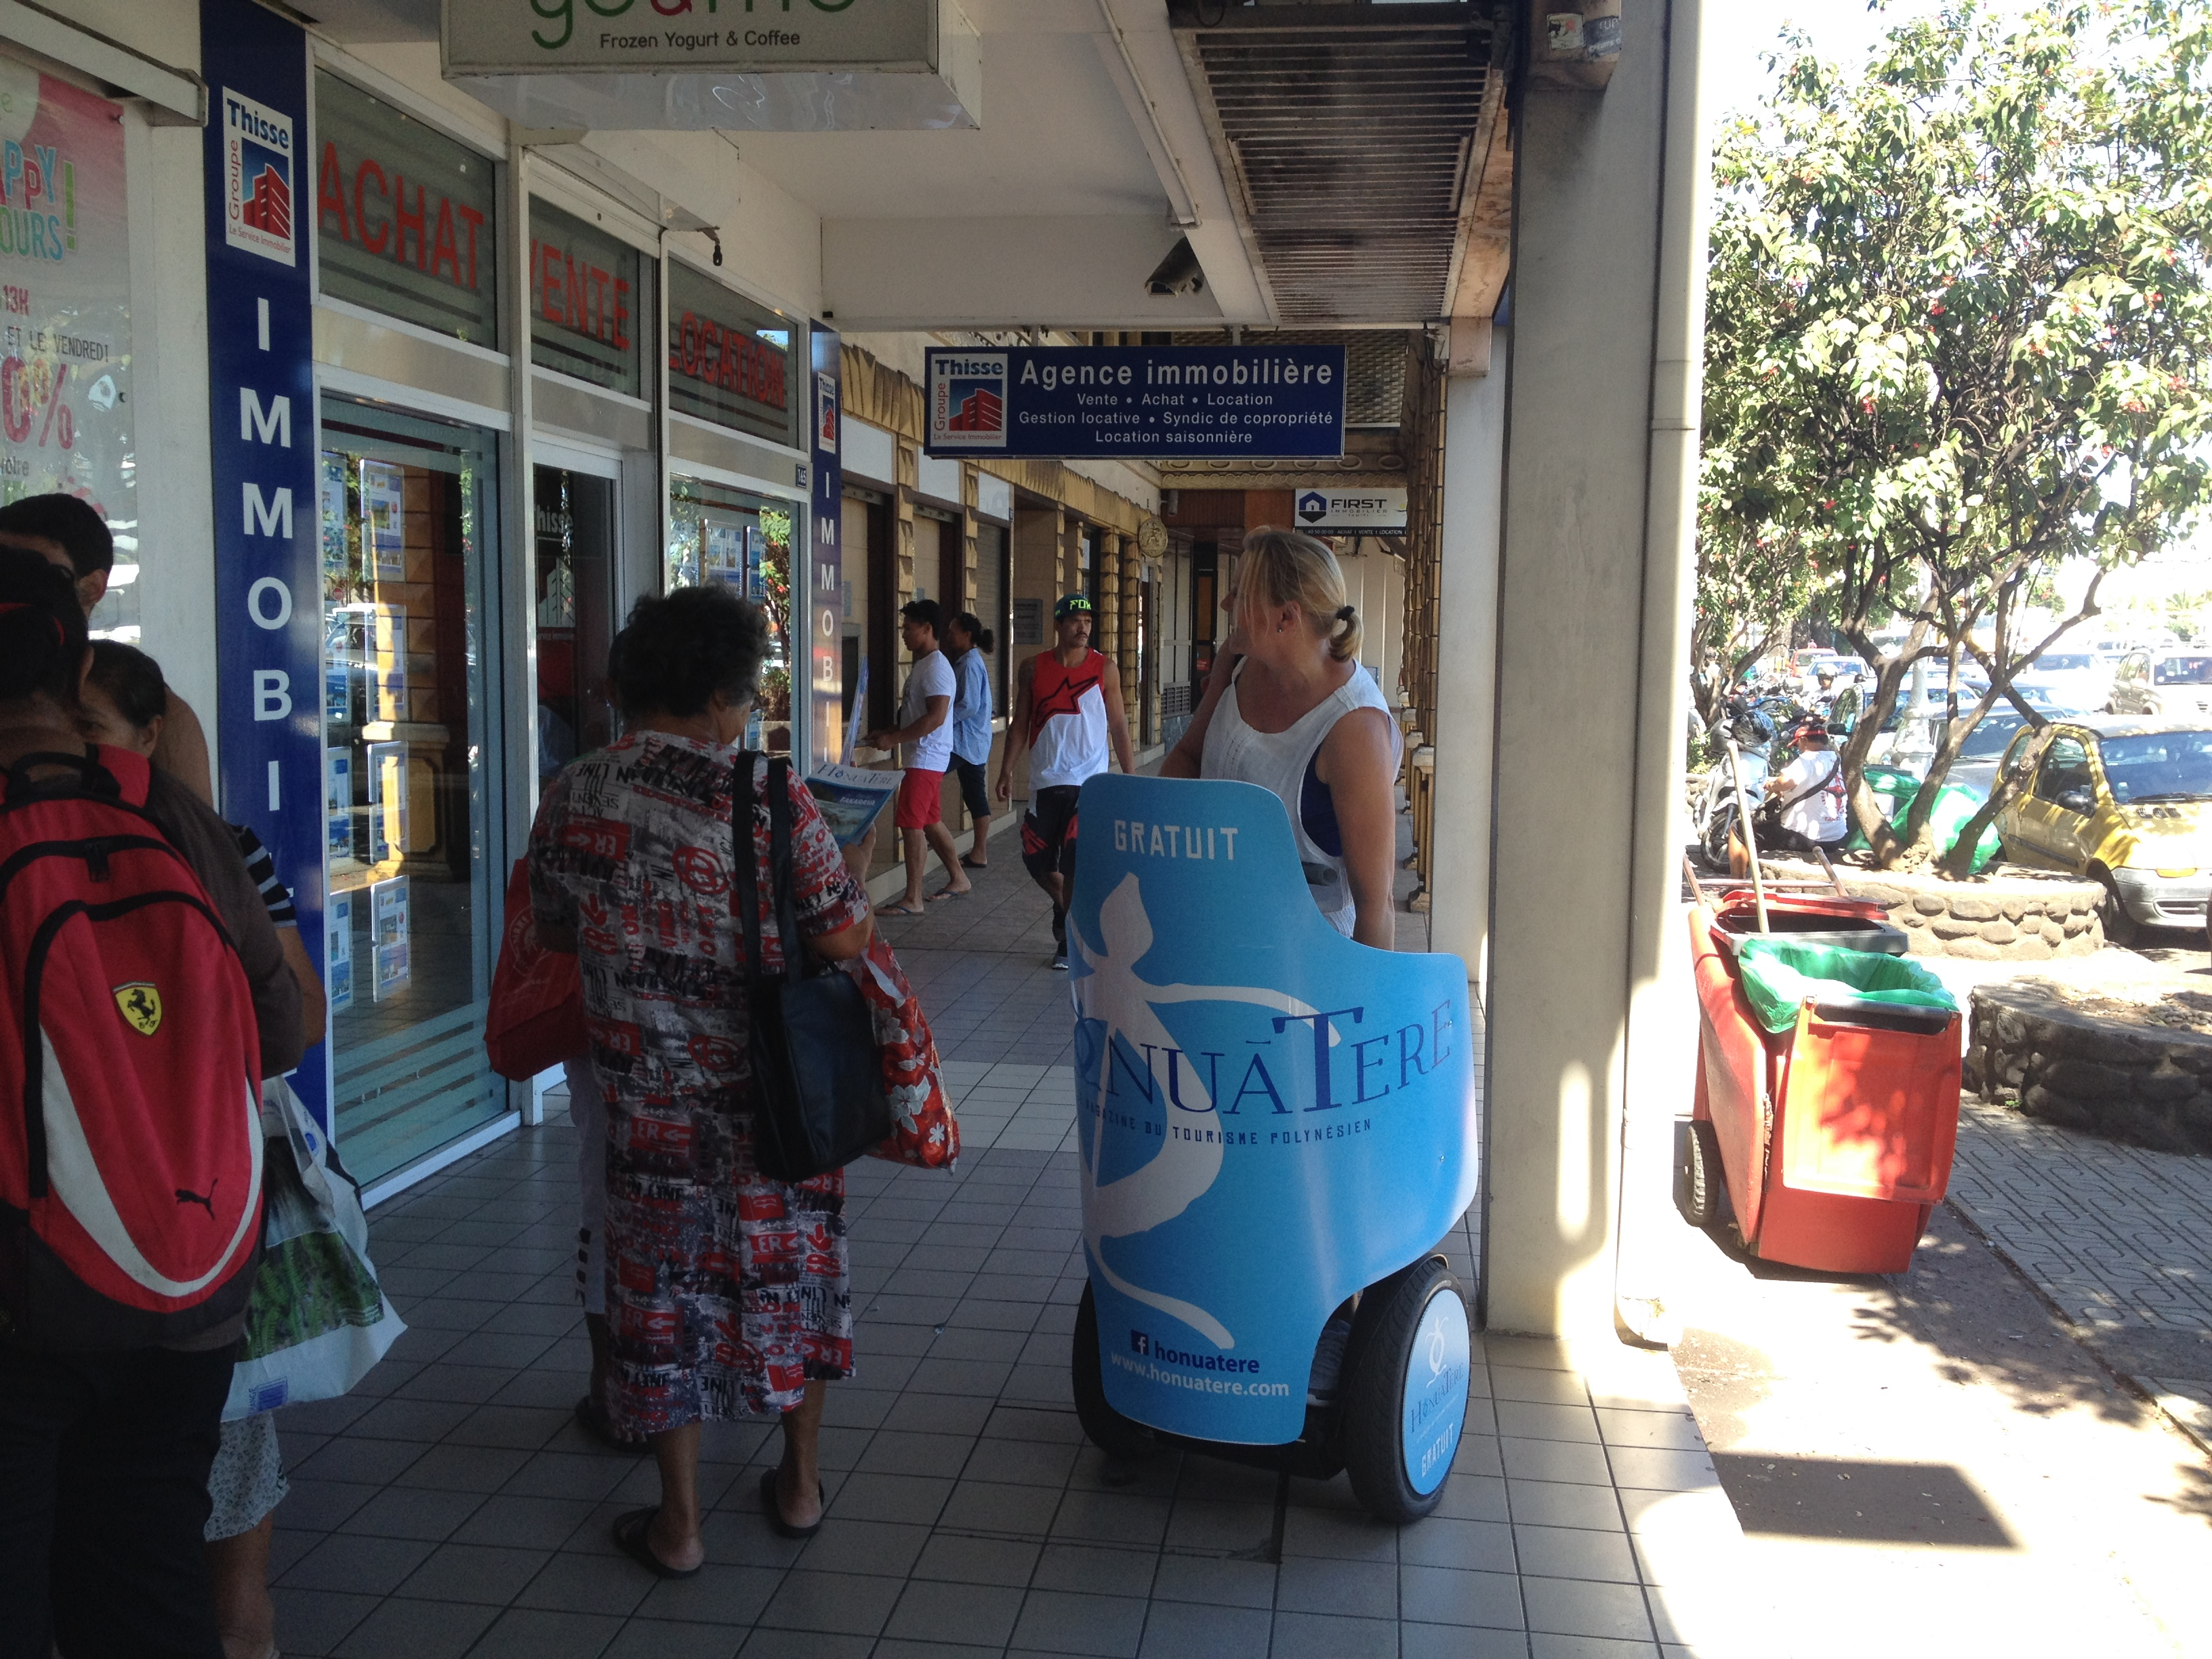 Street Marketing Segway Honuatere